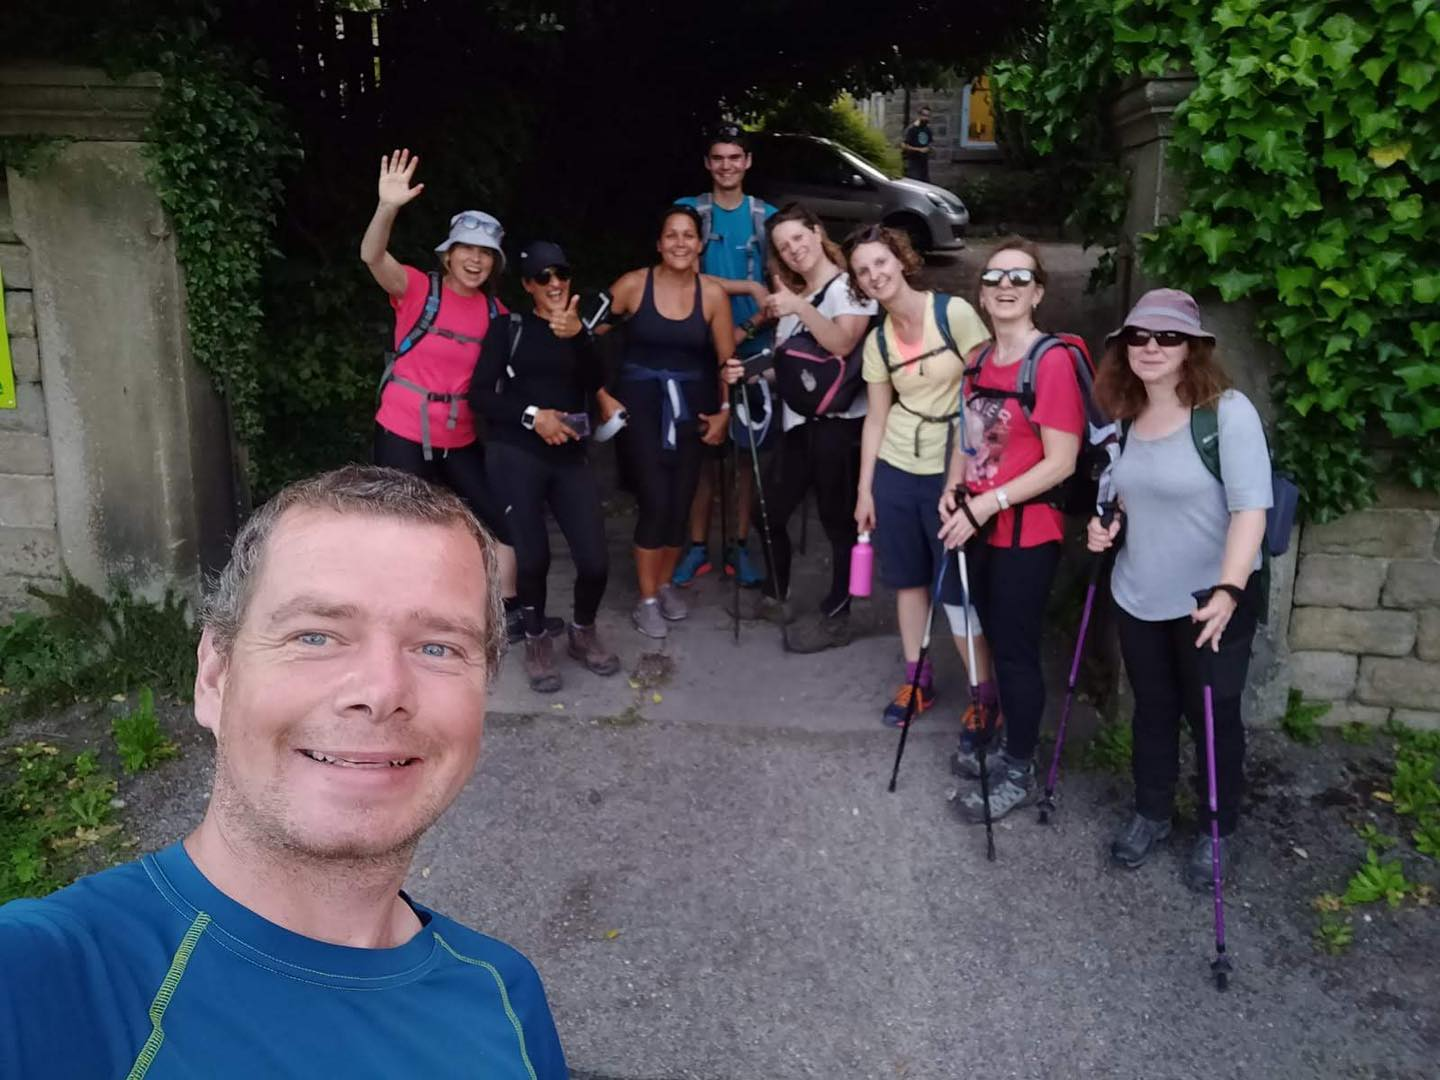 The Peak District Challenge is on 17-18 September 2021, organised by Wilderness Development for o...